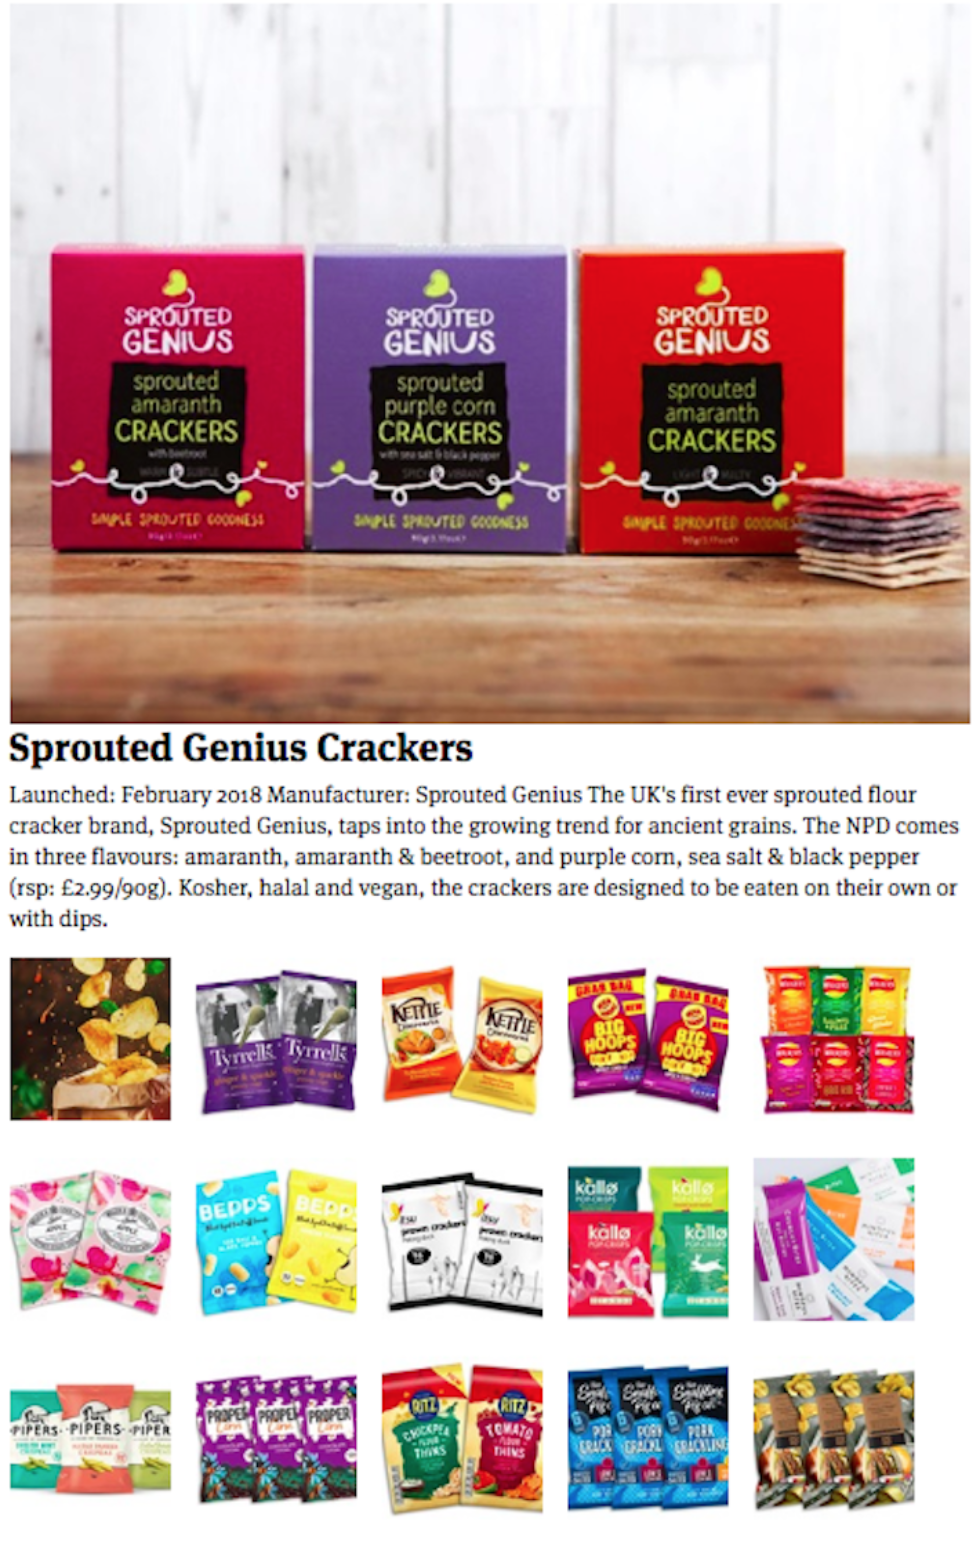 Coverage for Sprouted Genius in The Grocer, 2018-05-03